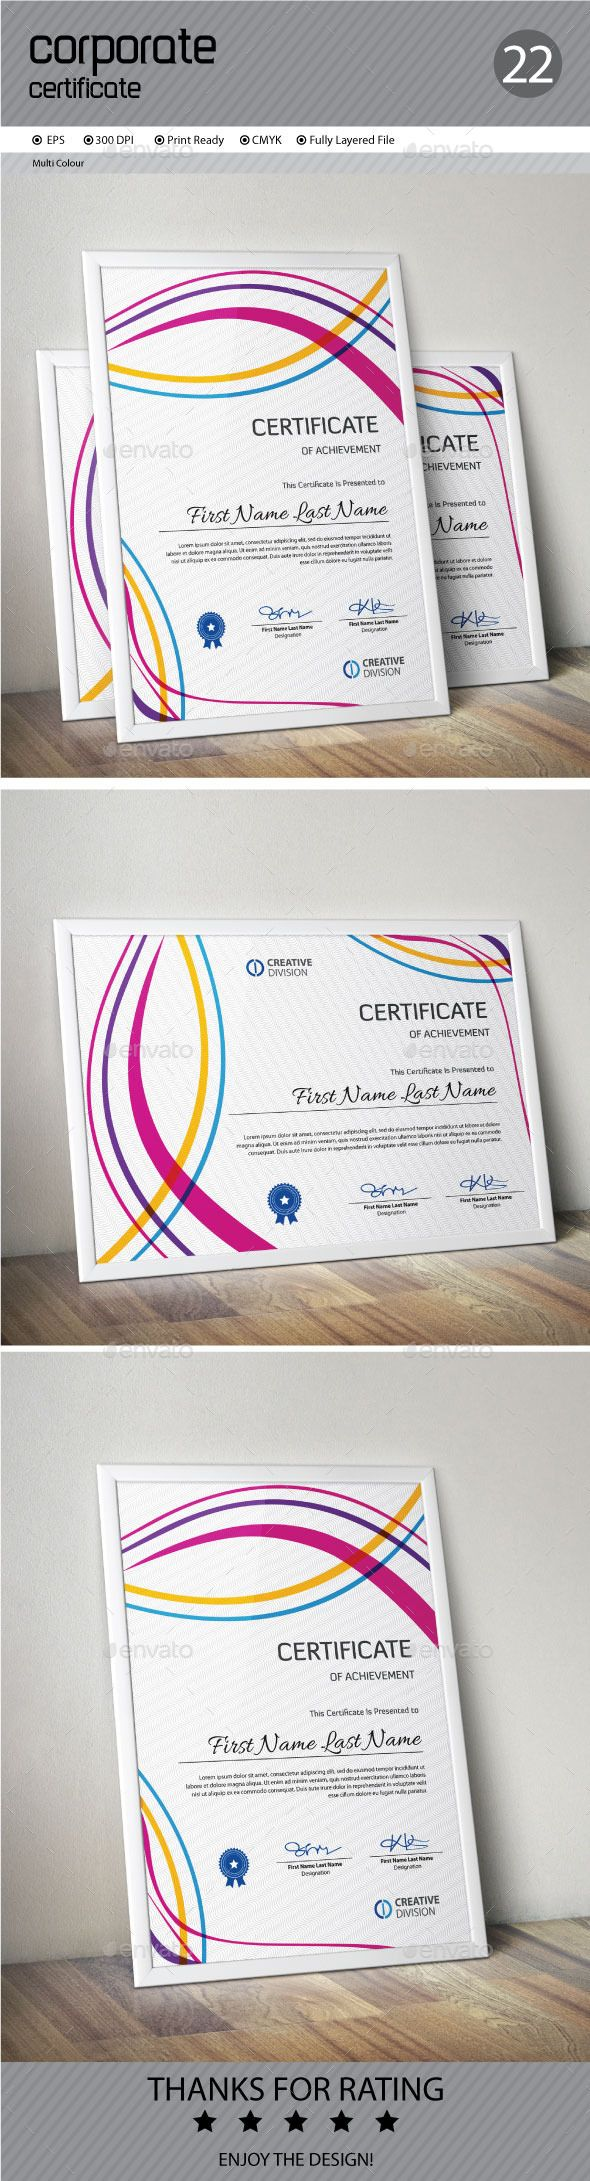 also  additionally 14 best Certificate of Achievement Template PSD  EPS  Ai images on besides  moreover 14 best Certificates images on Pinterest   Certificate design besides  further Certificate furthermore 19 best Guilloche Templates images on Pinterest   Font logo  Fonts likewise 47 best Certificate design images on Pinterest   Certificate further Certificate as well . on 3658x2630